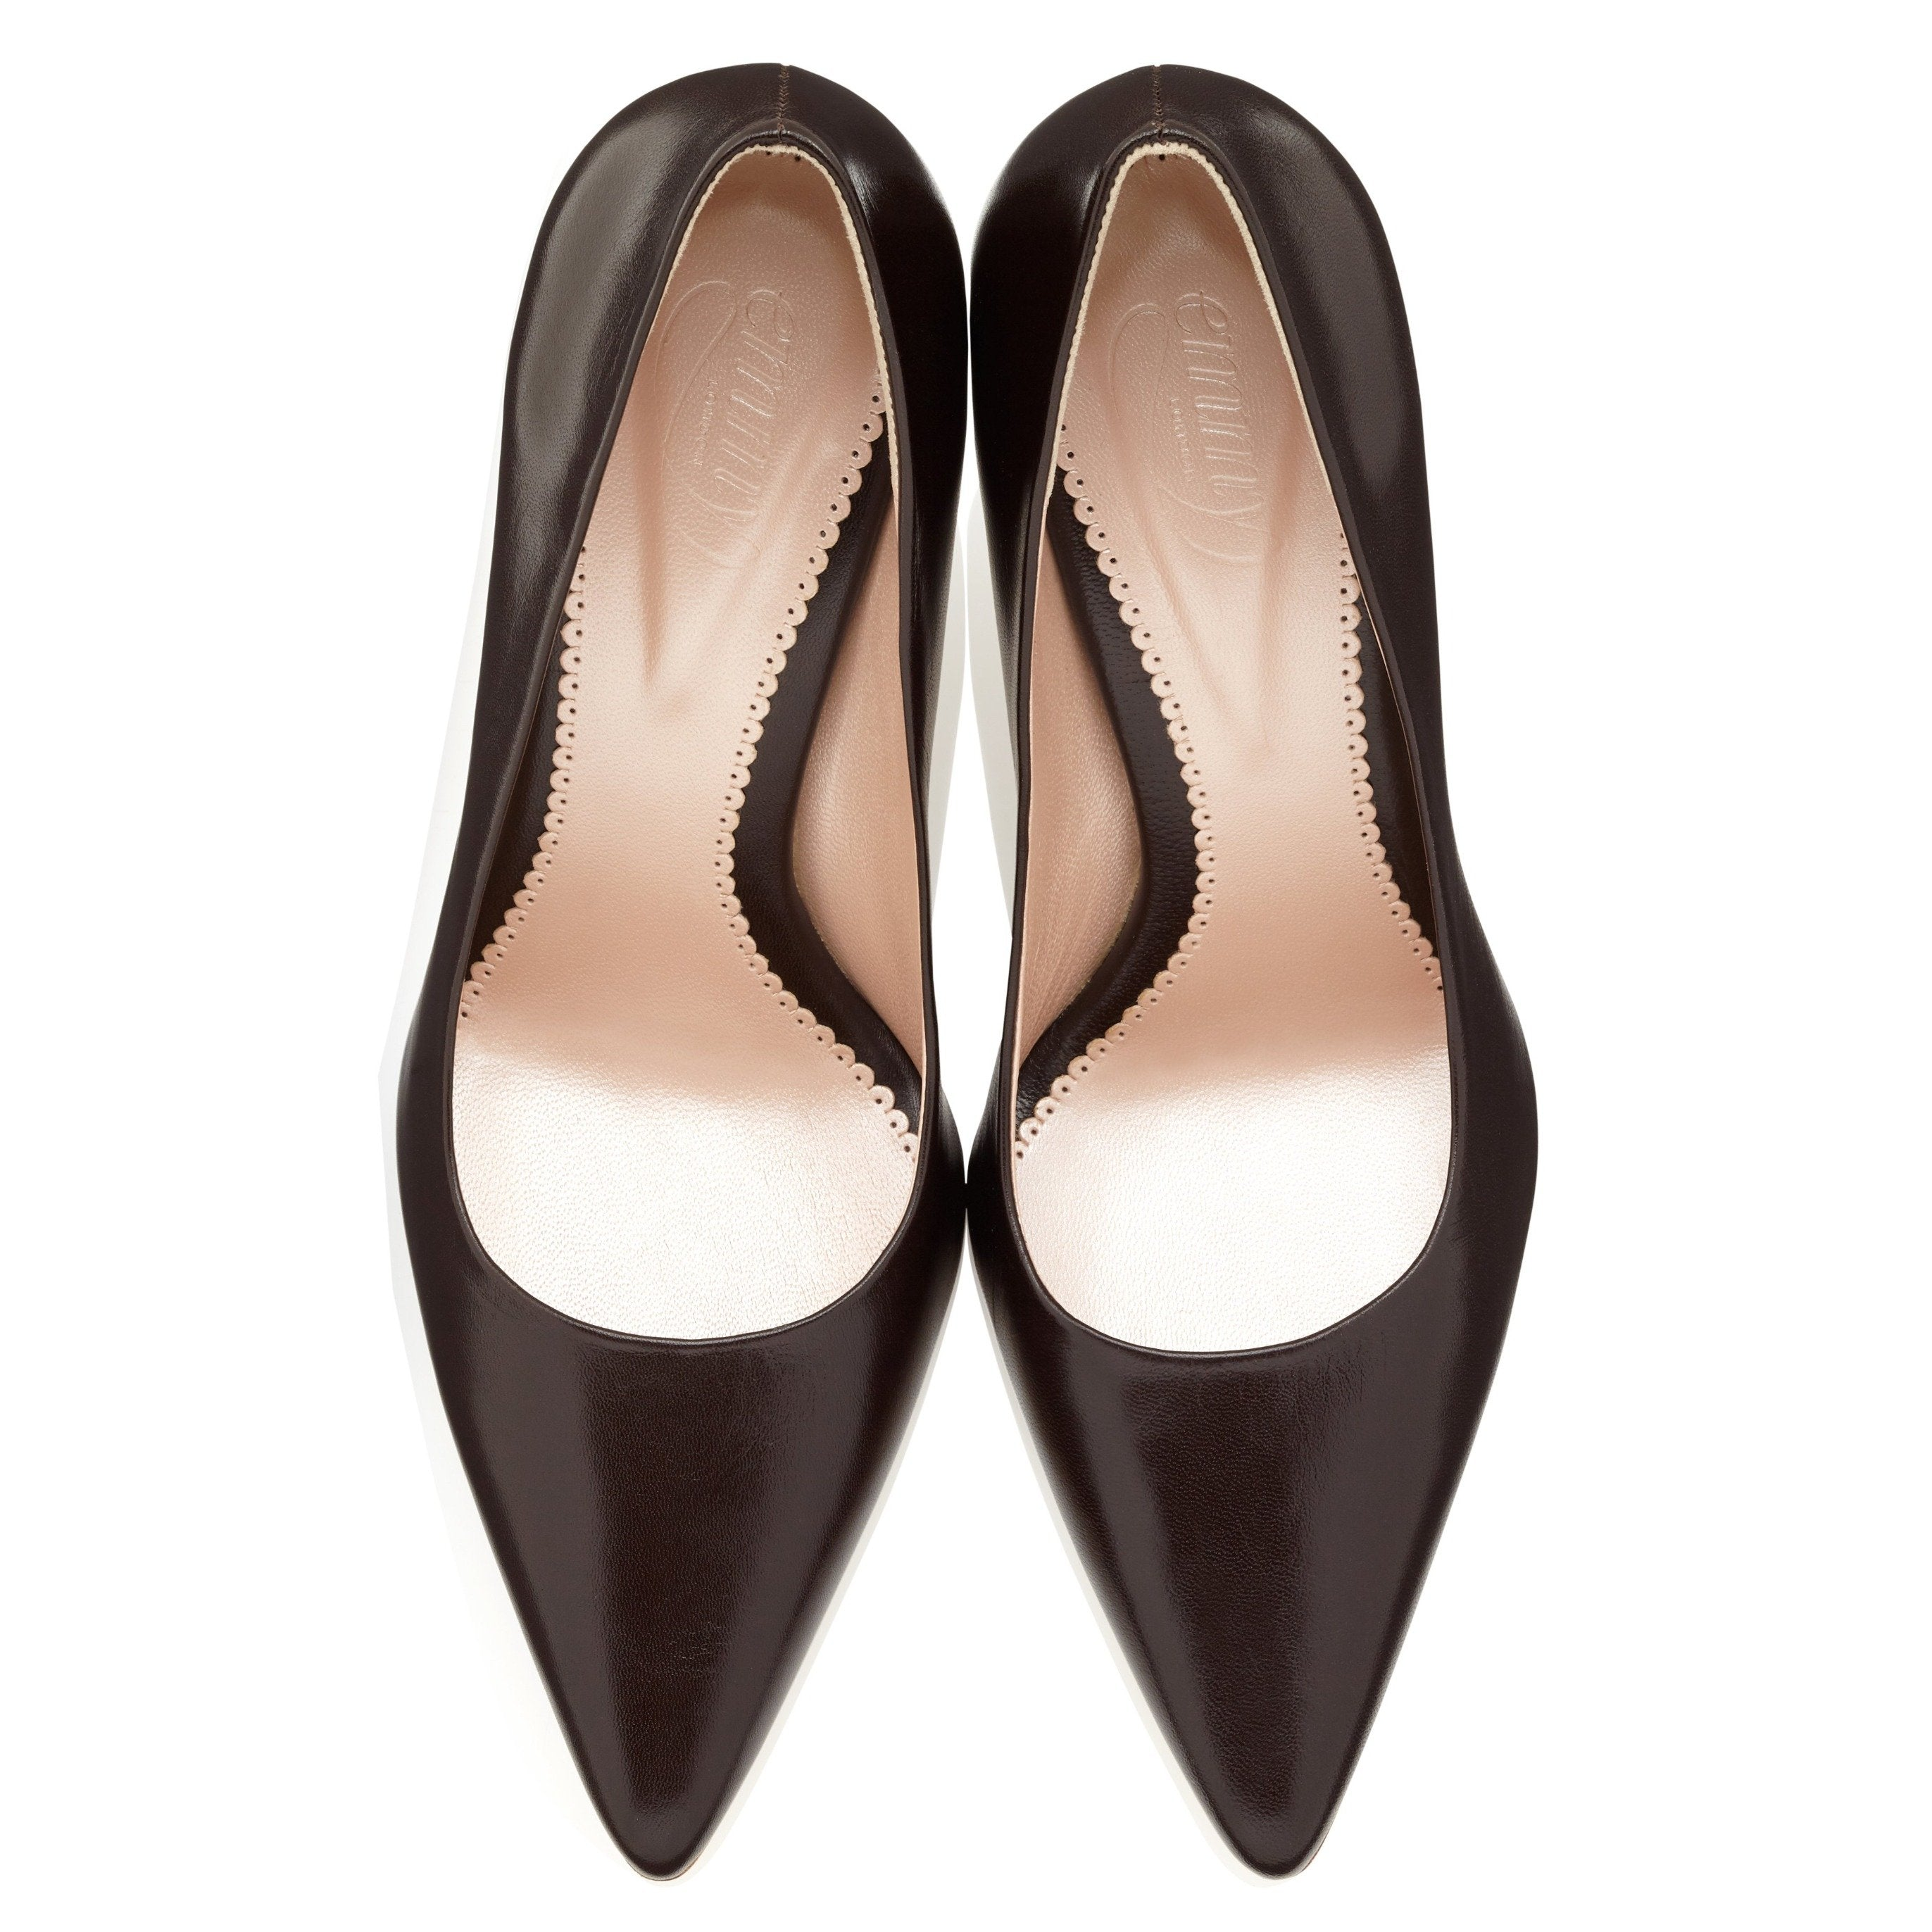 Olivia Leather Chocolate Brown Court Shoe Designed in London By Emmy London Handmade Luxury Leather